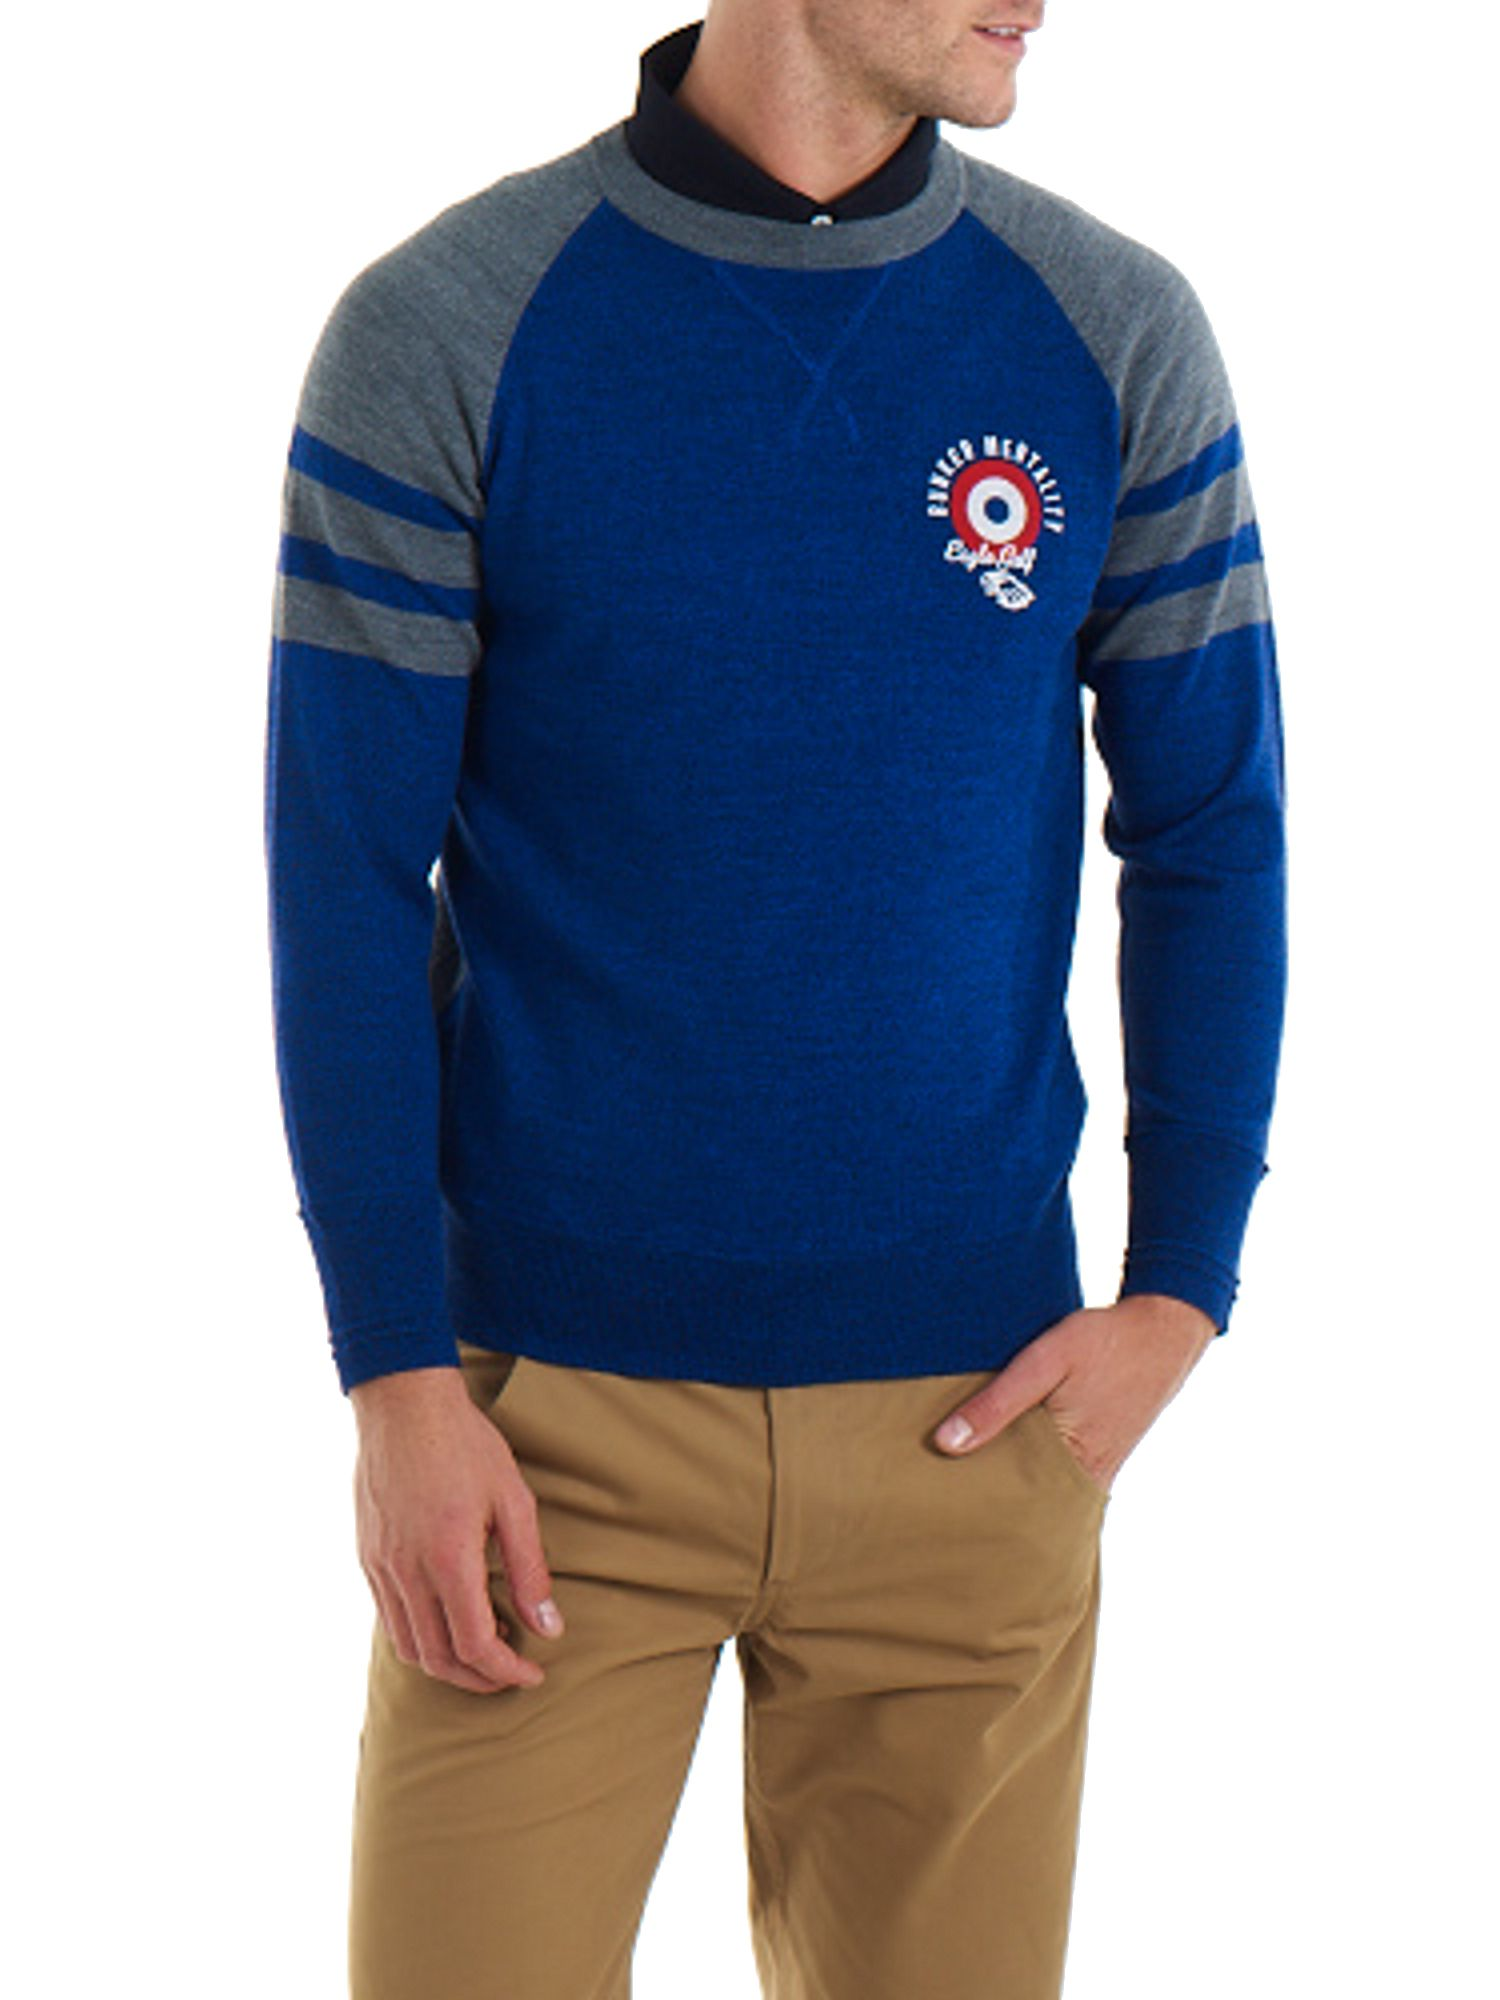 Eagle Golf Target Crew Neck Sweater